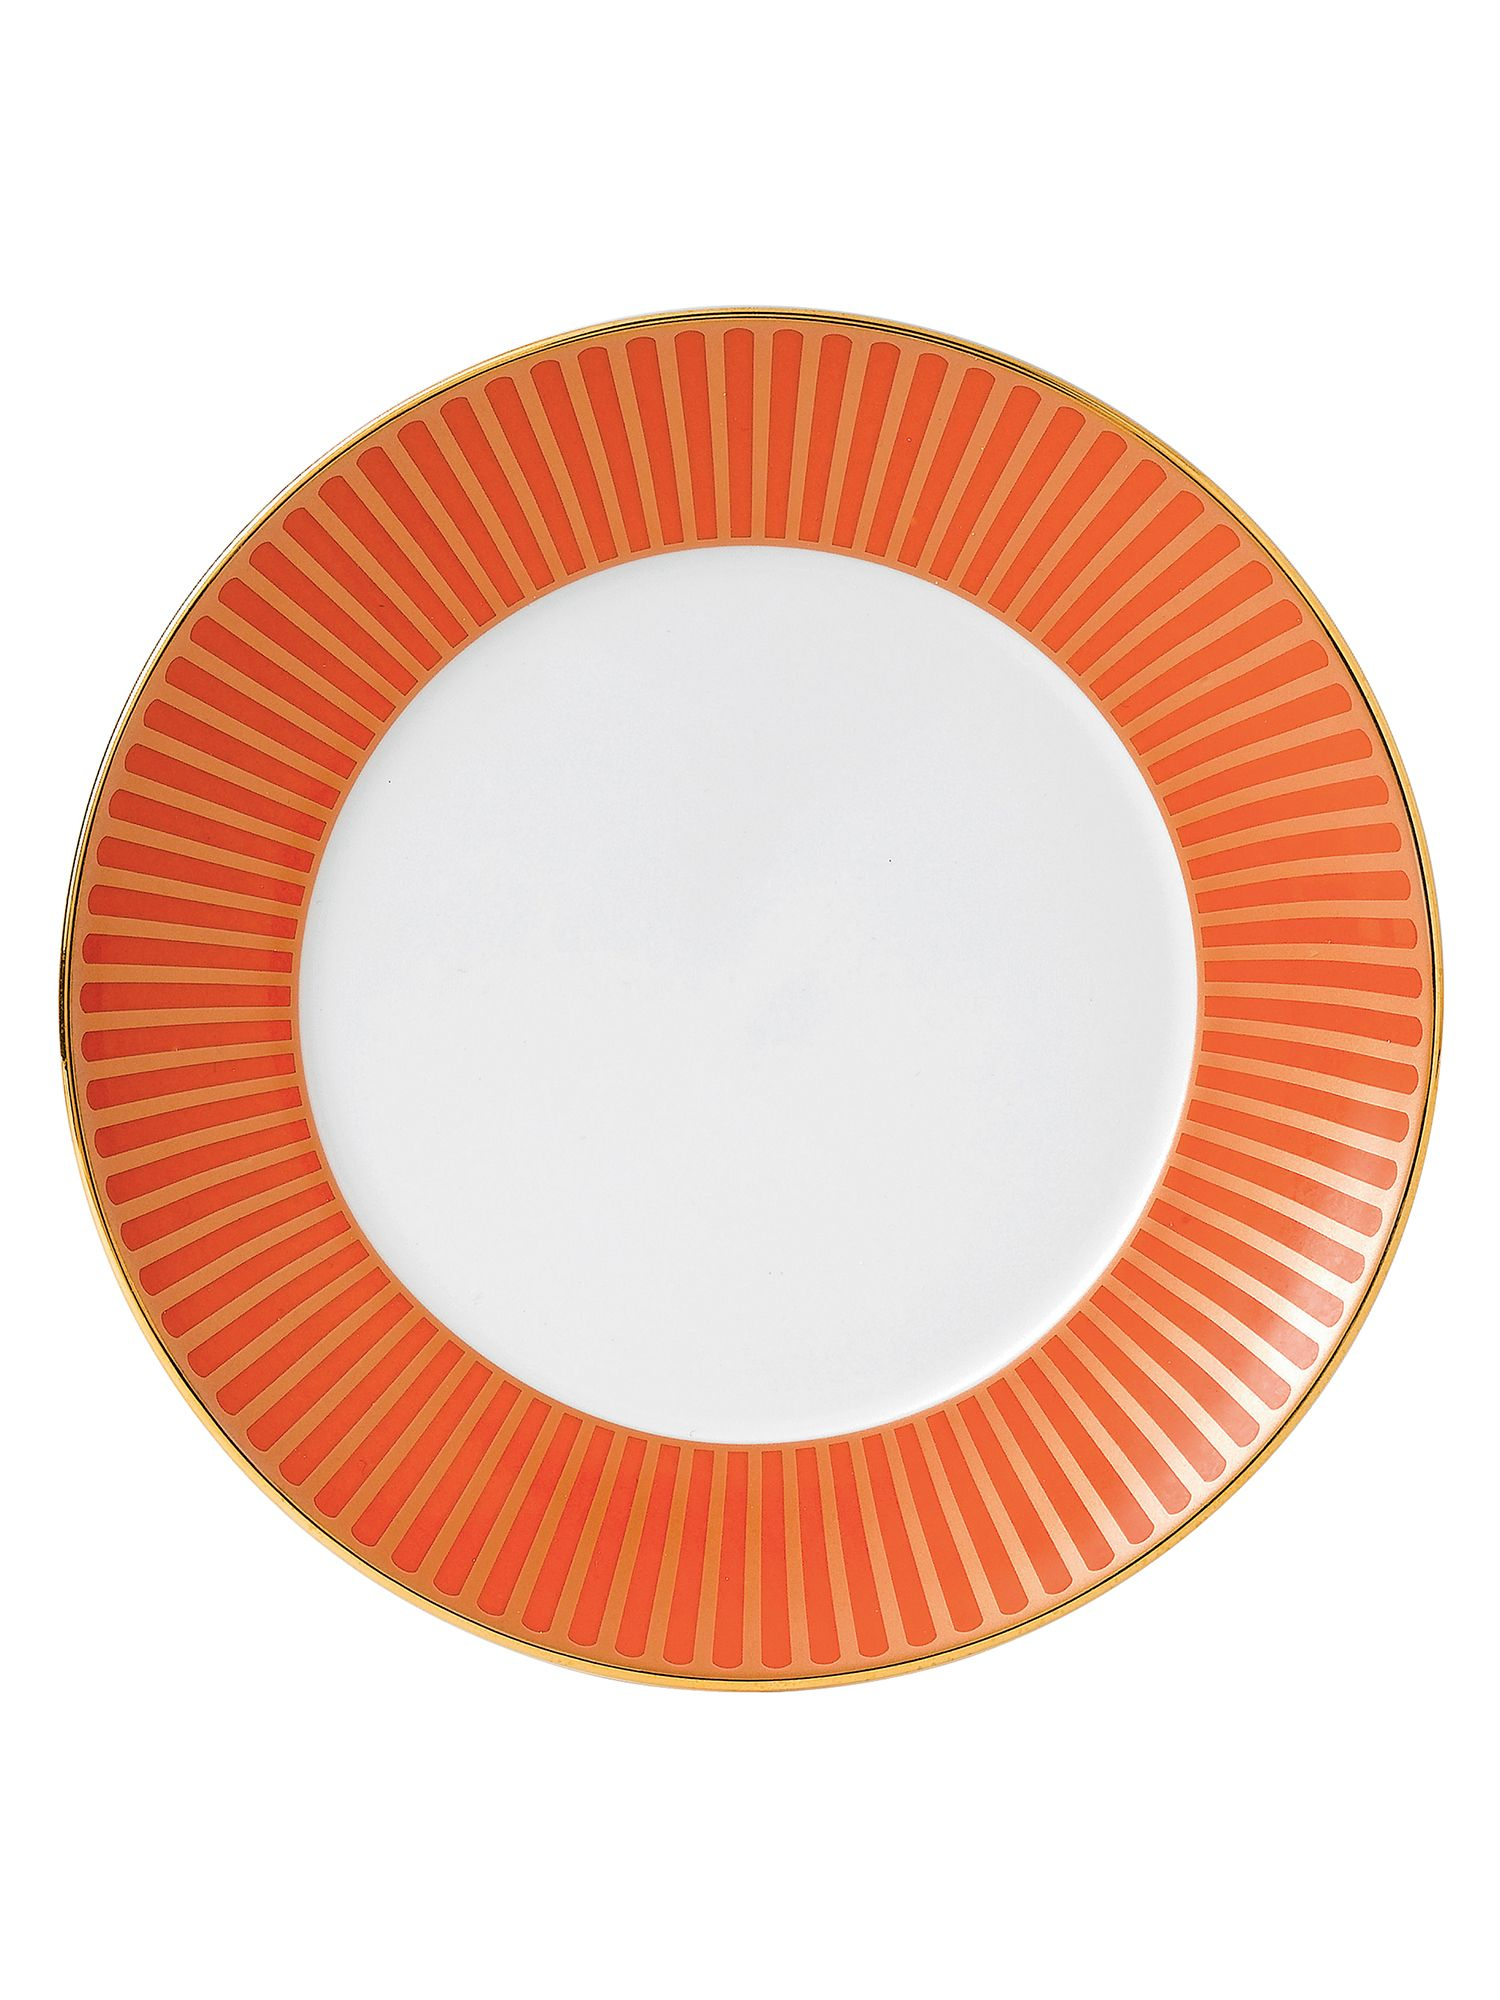 Palladian accent house fine china plate 21cm